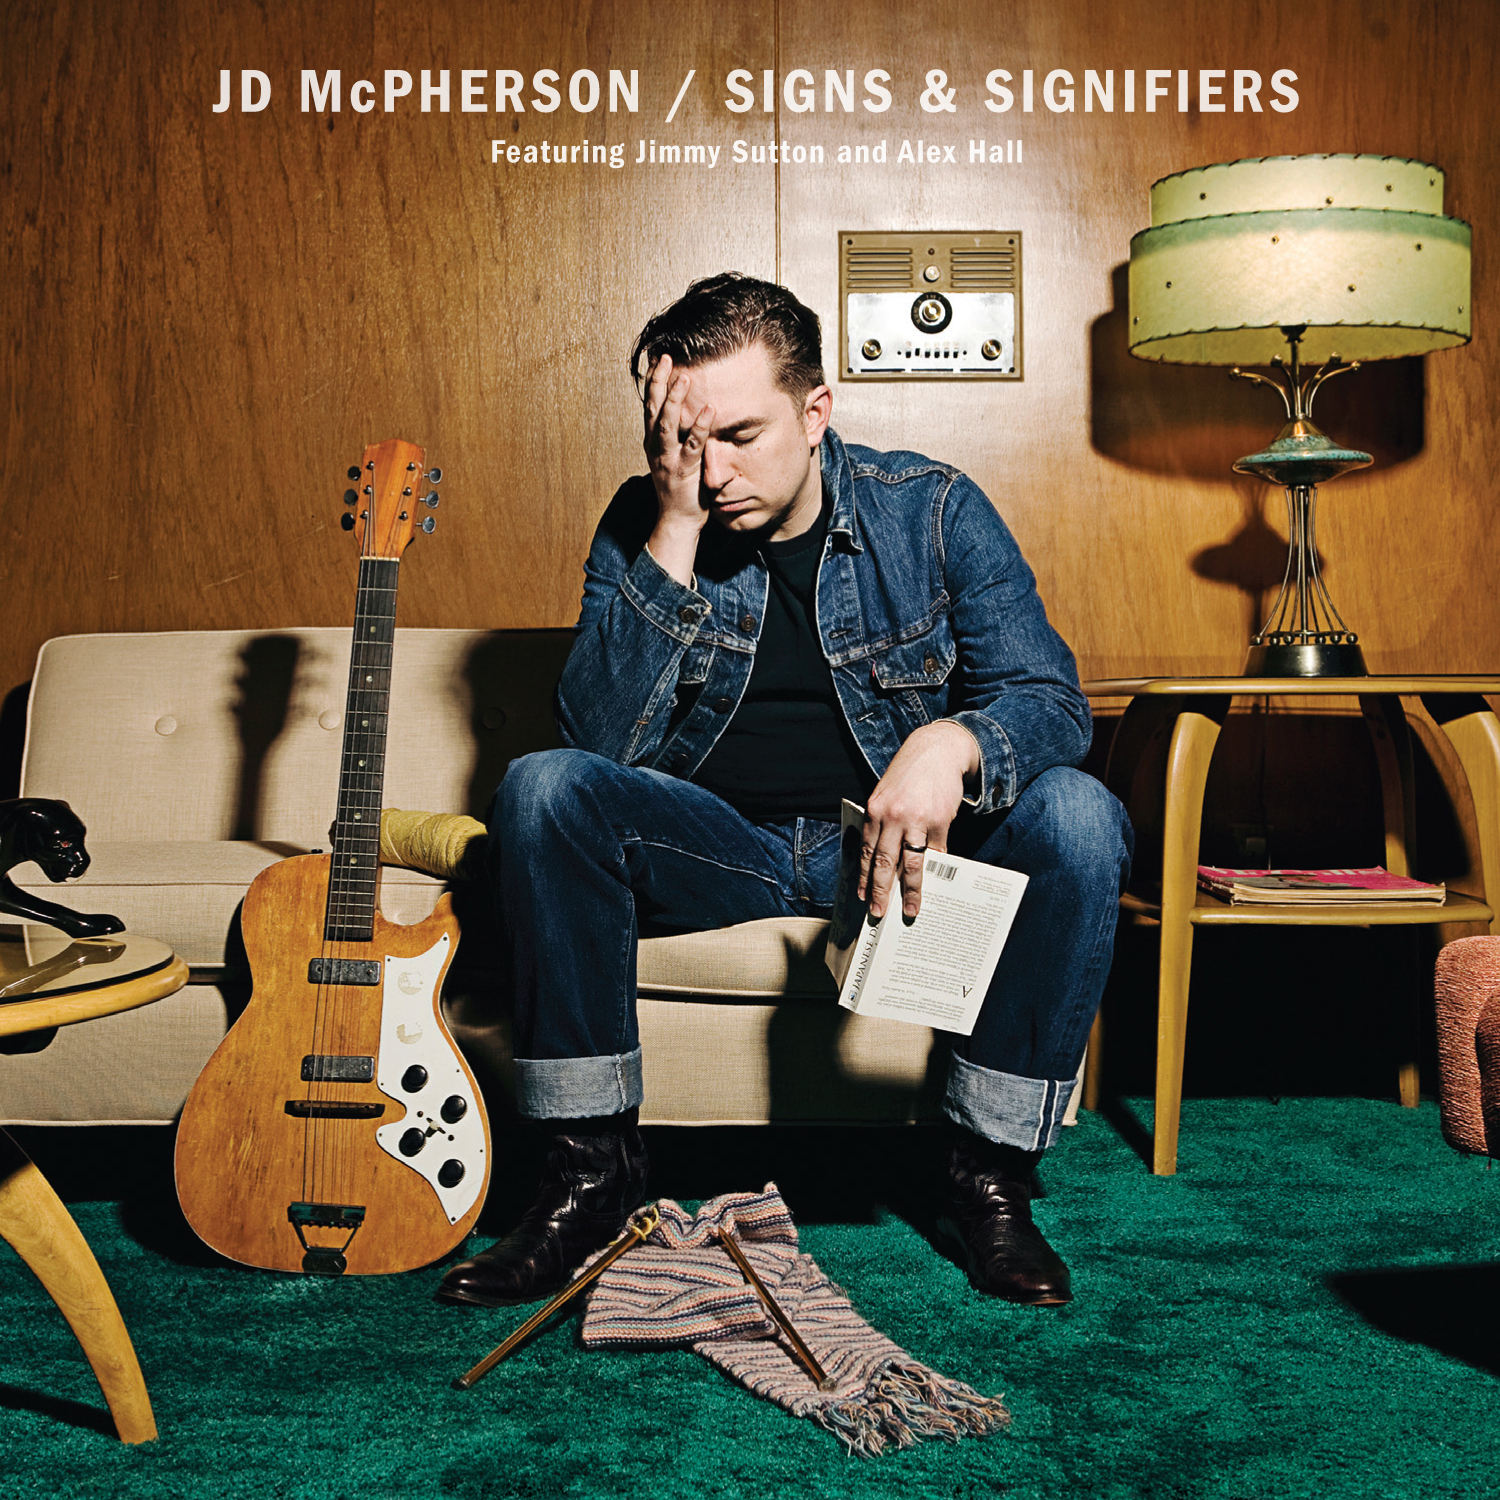 JD McPherson at Bergenfest this weekend